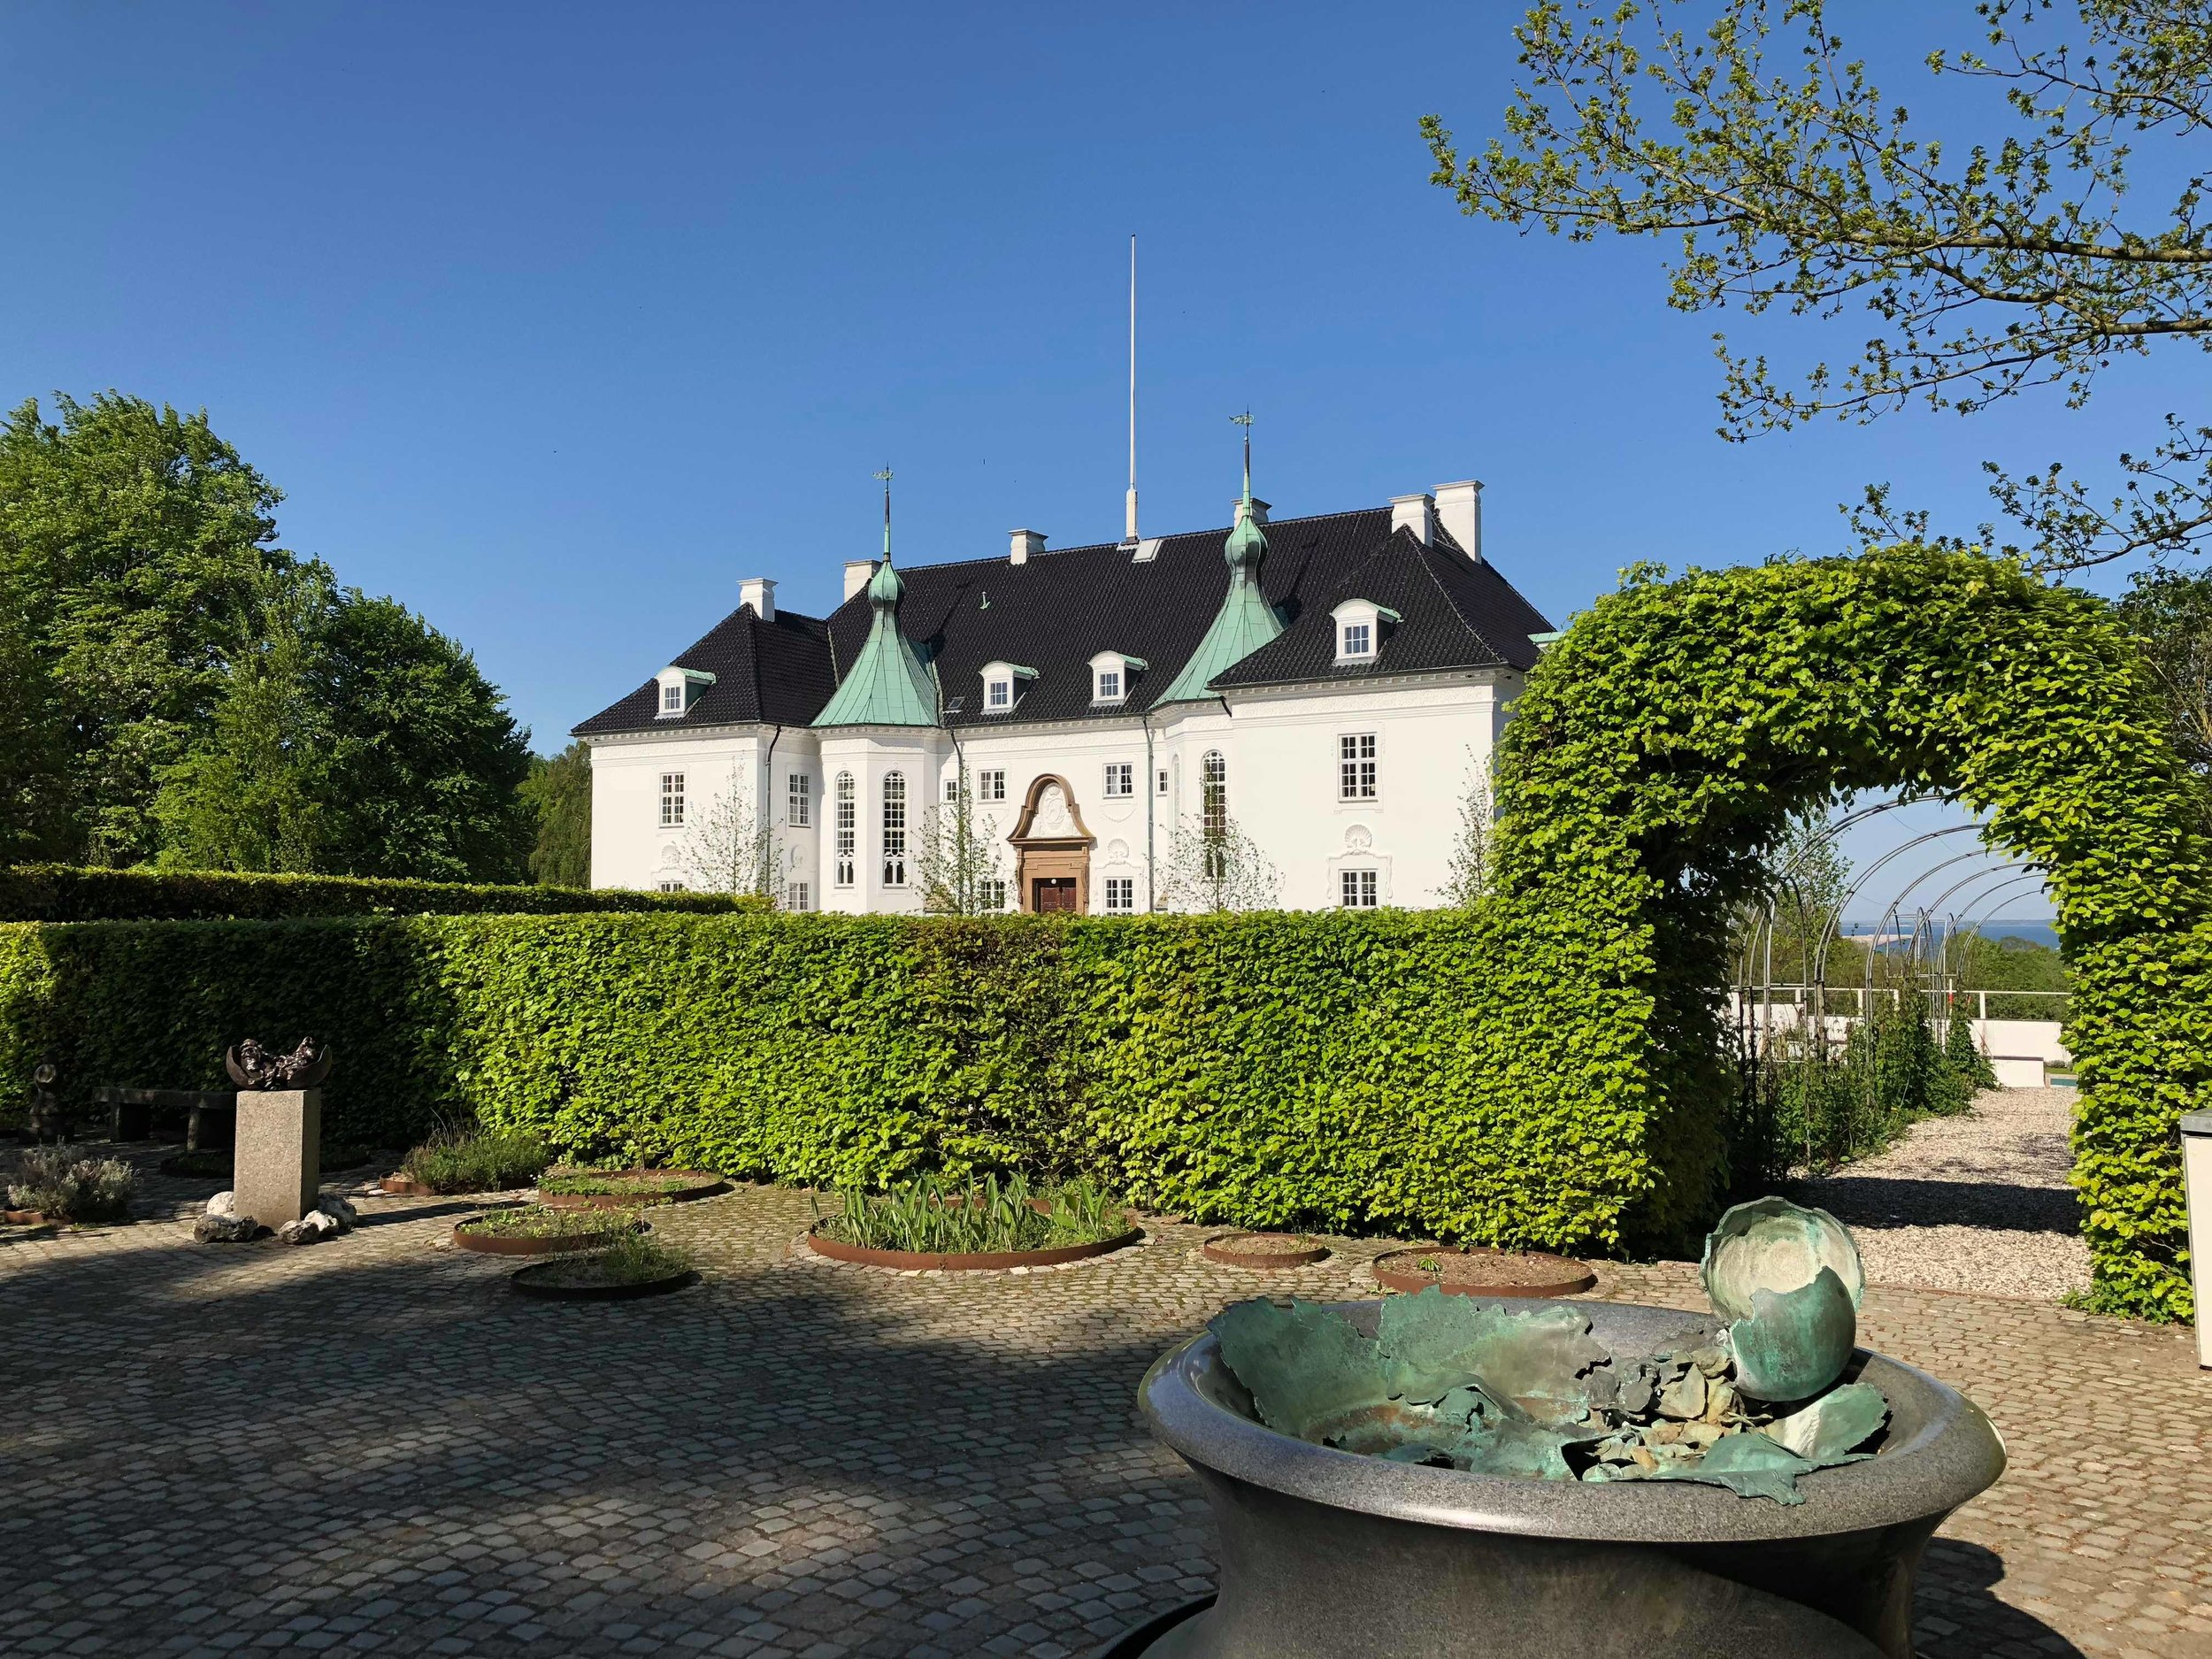 Marselisborg Palace and garden